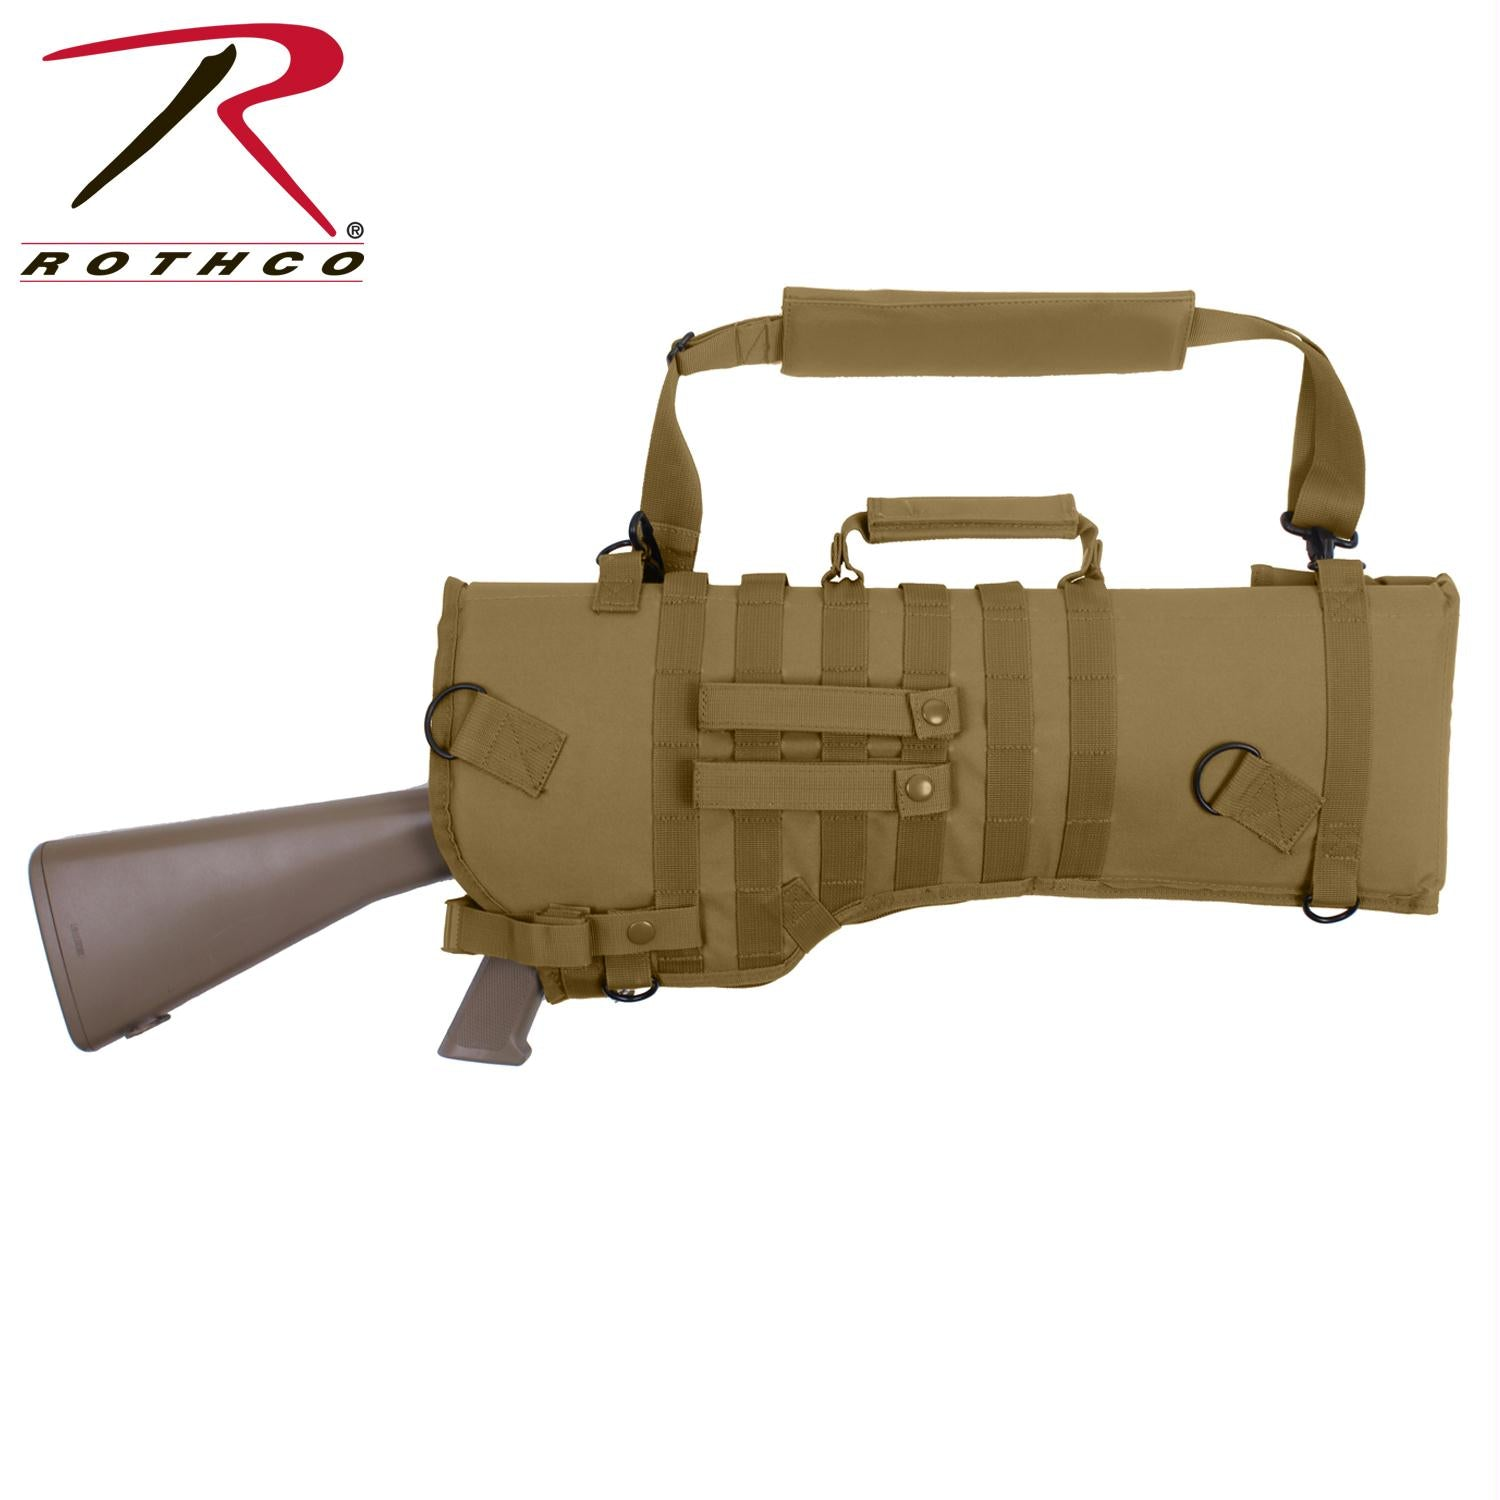 Rothco Tactical Rifle Scabbard - Coyote Brown